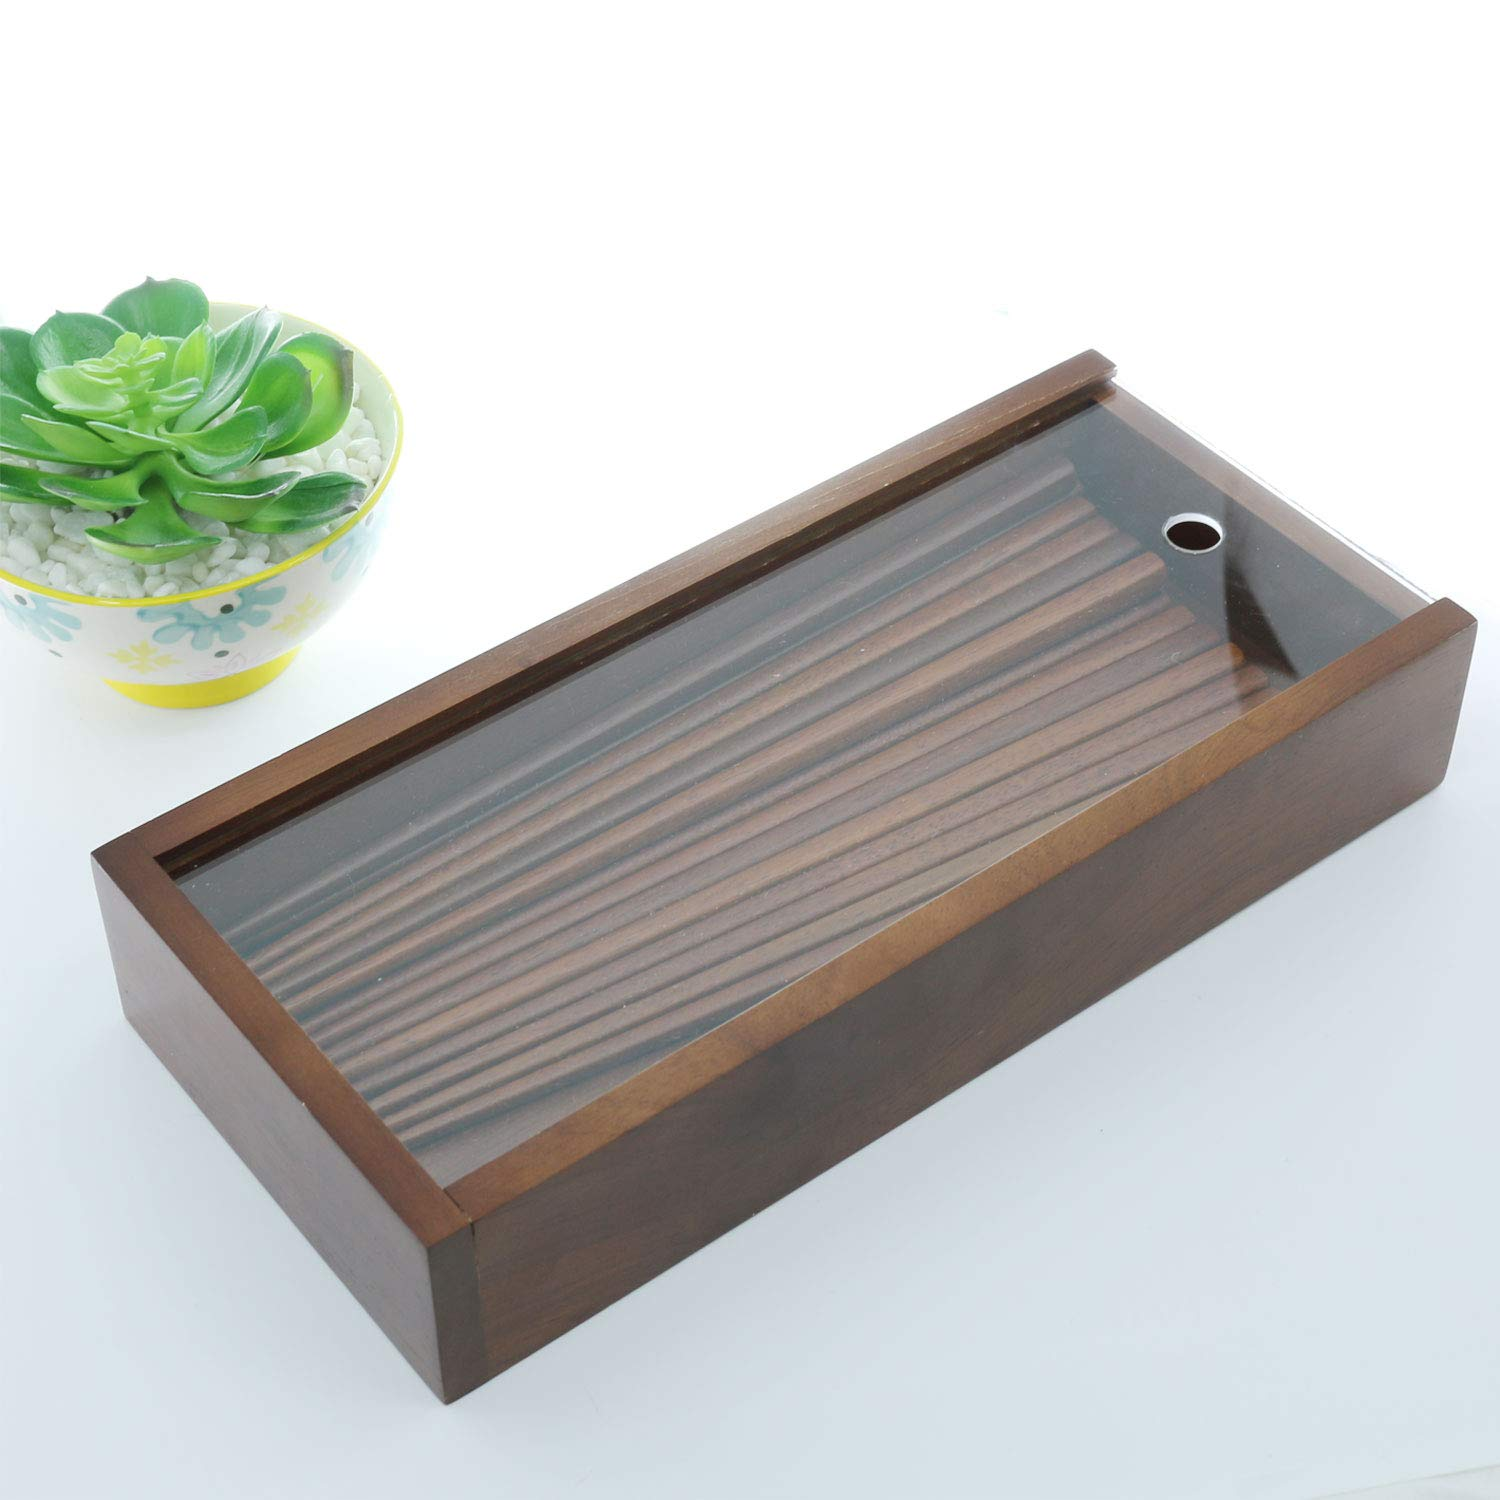 The Elixir Eco Green Wood Cutlery Organizer Spoon Chopstick Flatware Holder Case, Kitchen Organizer Sleek Cutlery Holder with Clear Sliding Lid, Korean Spoon Chopstick Case, Ottchil Finished